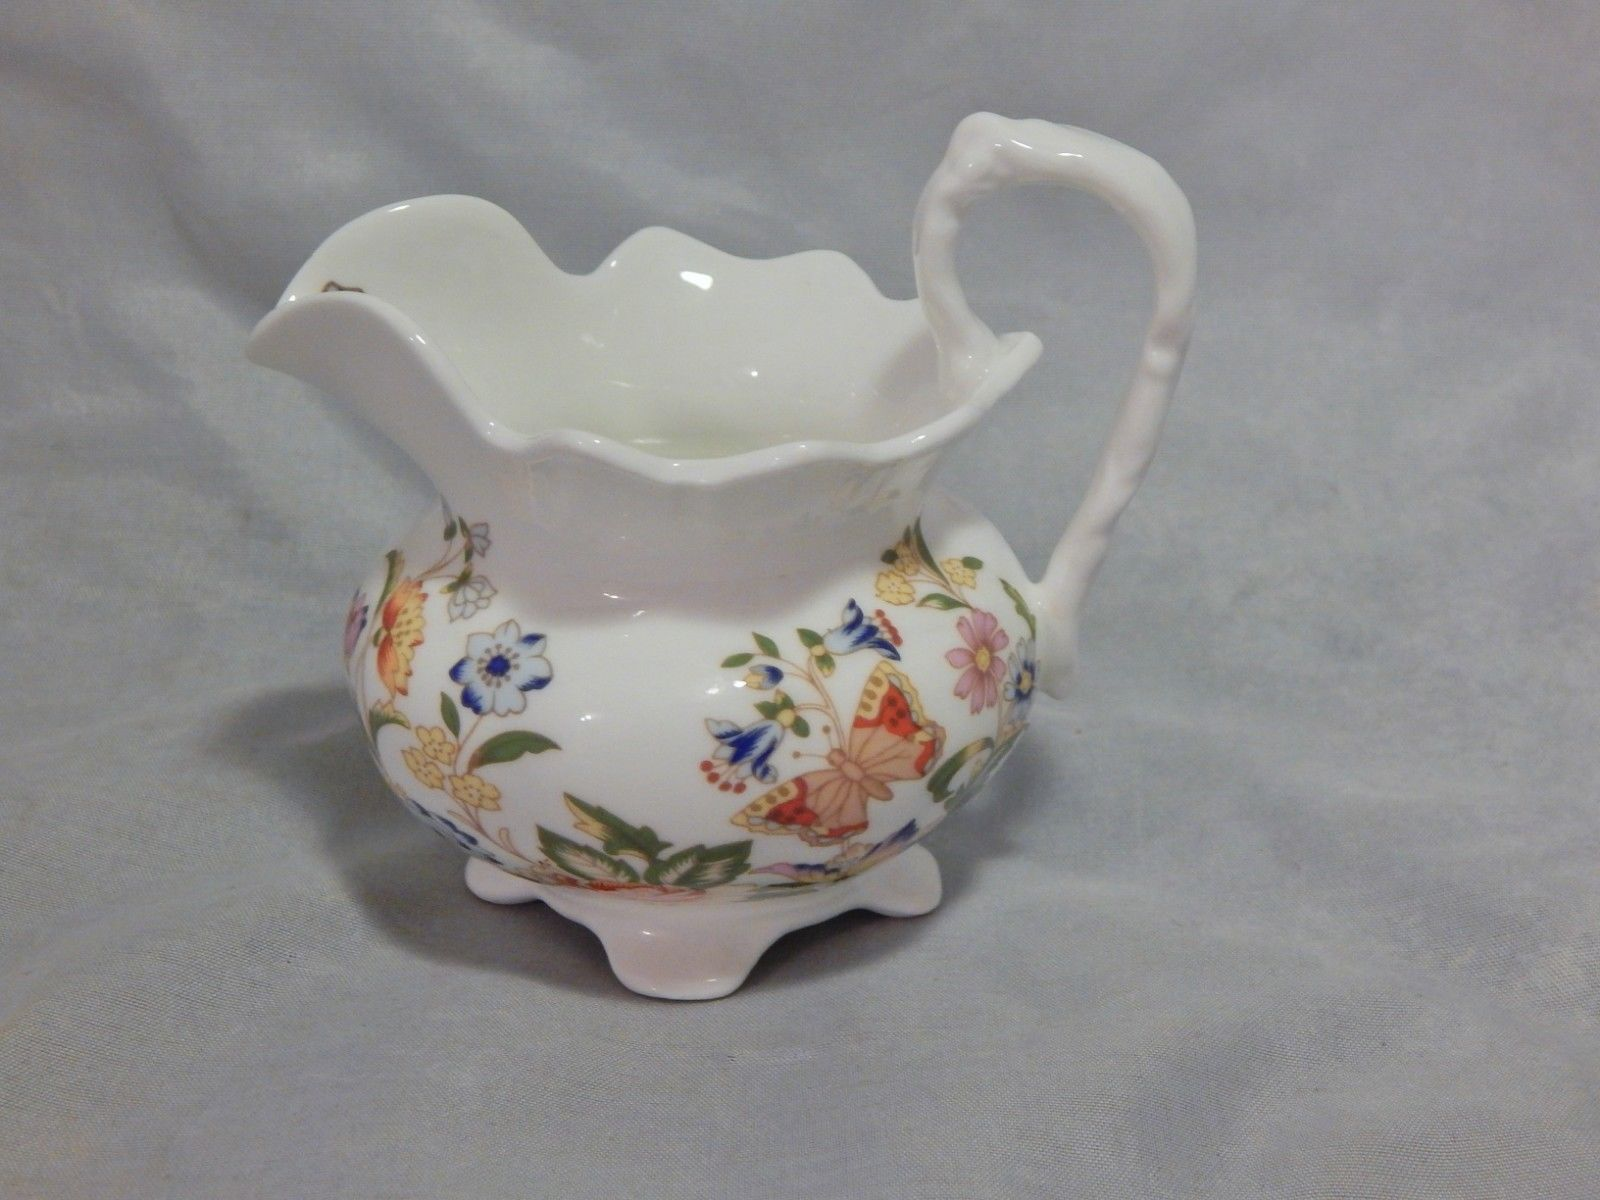 Aynsley England Cottage Garden Small Creamer image 1